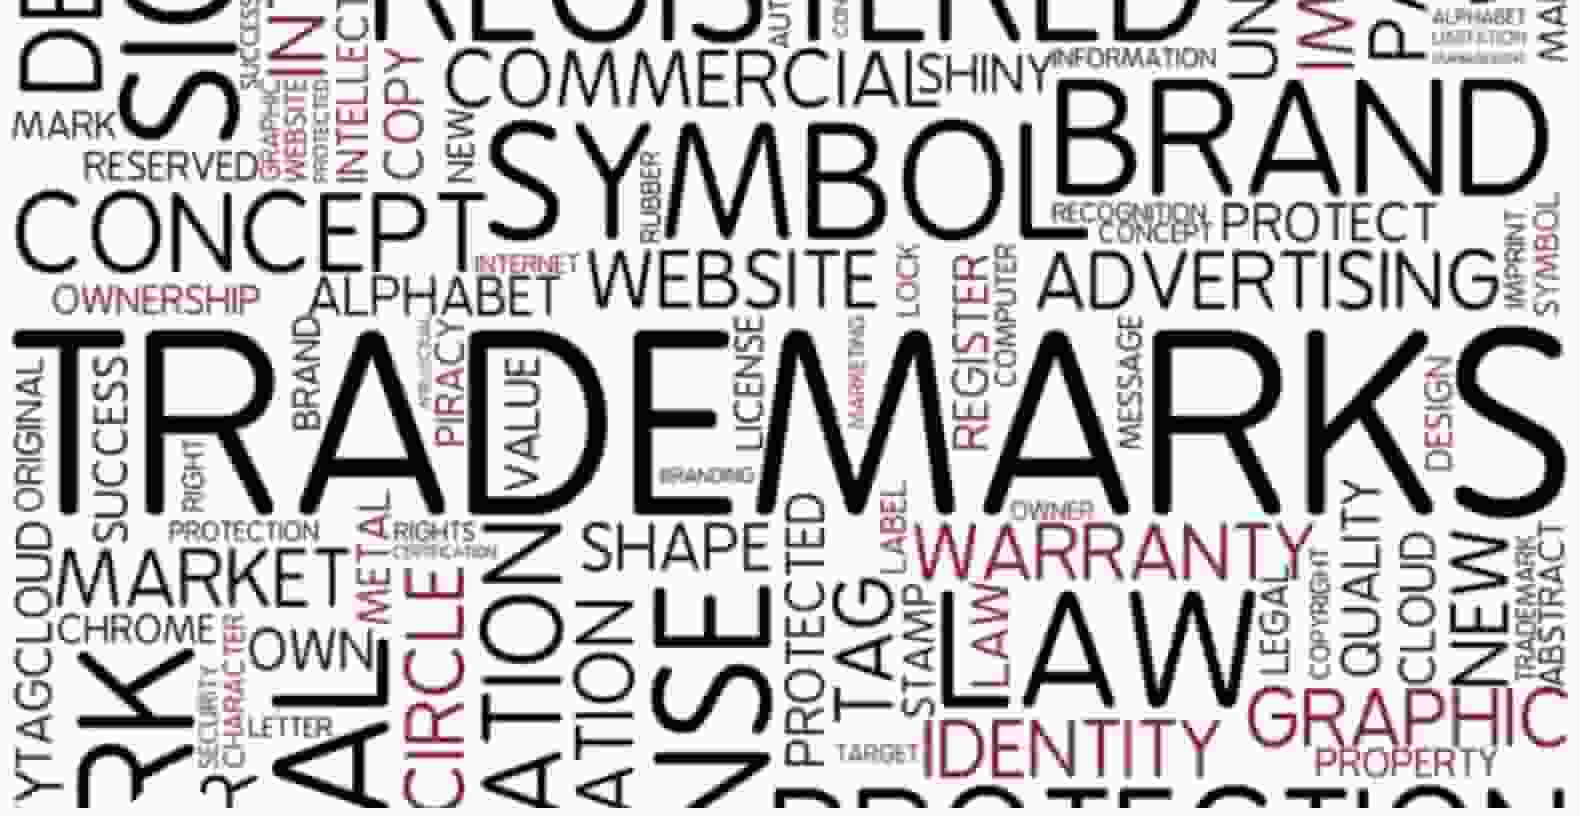 Trademark Filing in India - Process and Business Benefits